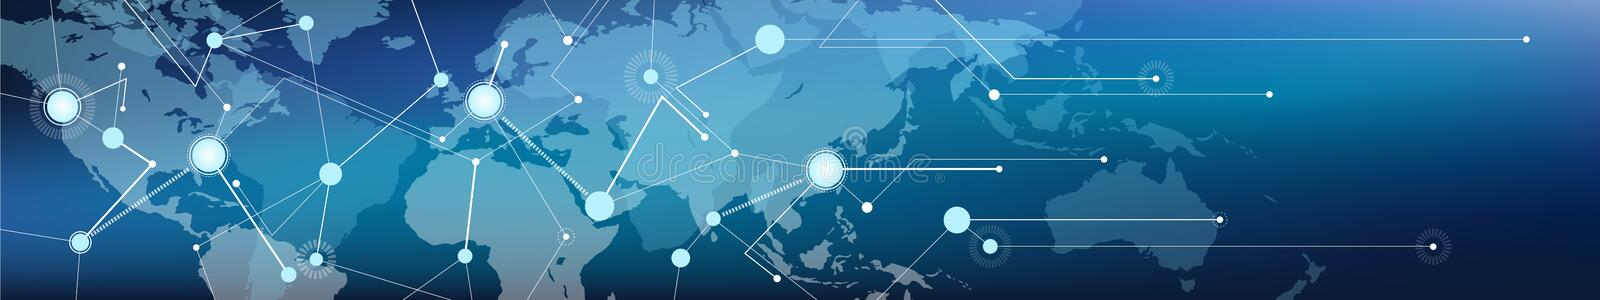 Connected world map banner – communication / logistics and transportation / commerce, digitalization and connectivity vector illustration